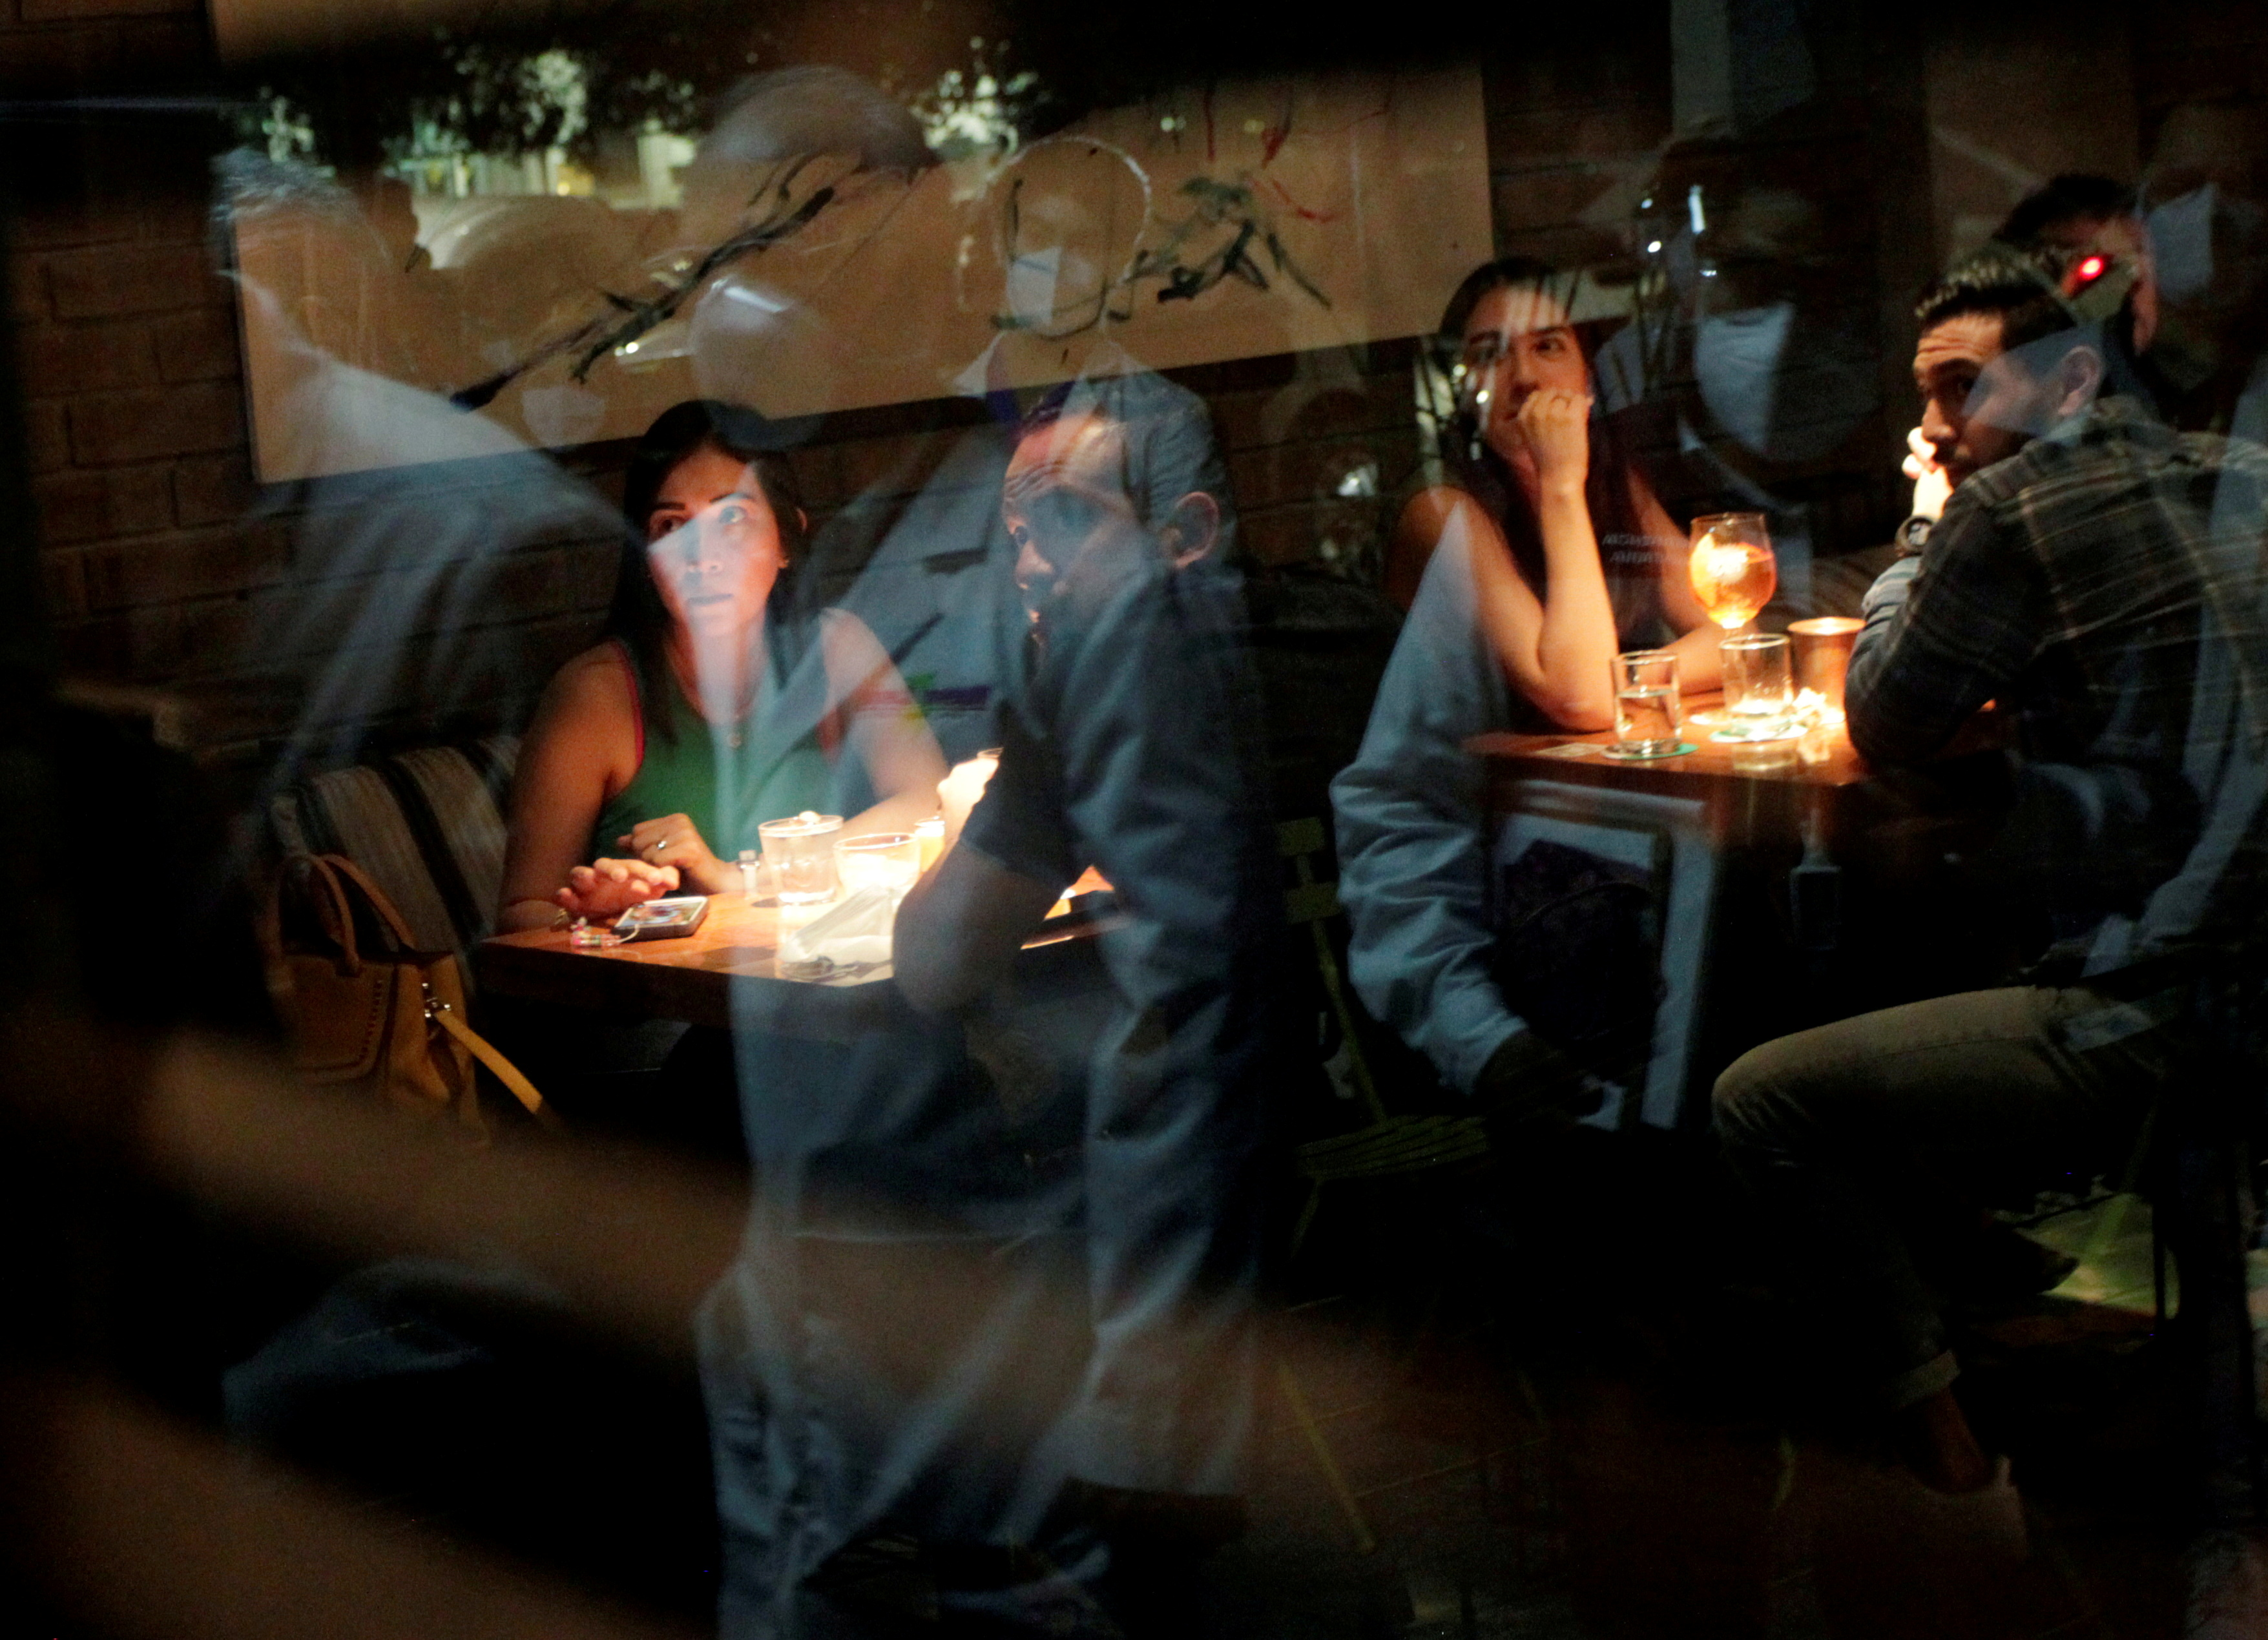 Medical workers are reflected on a window during a tour in nightclubs and restaurants to check that they do not exceed the allowed capacity, amid the coronavirus disease (COVID-19) outbreak, in San Pedro Garza Garcia, on the outskirts of Monterrey, Mexico July 24, 2021. Picture taken July 24, 2021. REUTERS/Daniel Becerril/File Photo